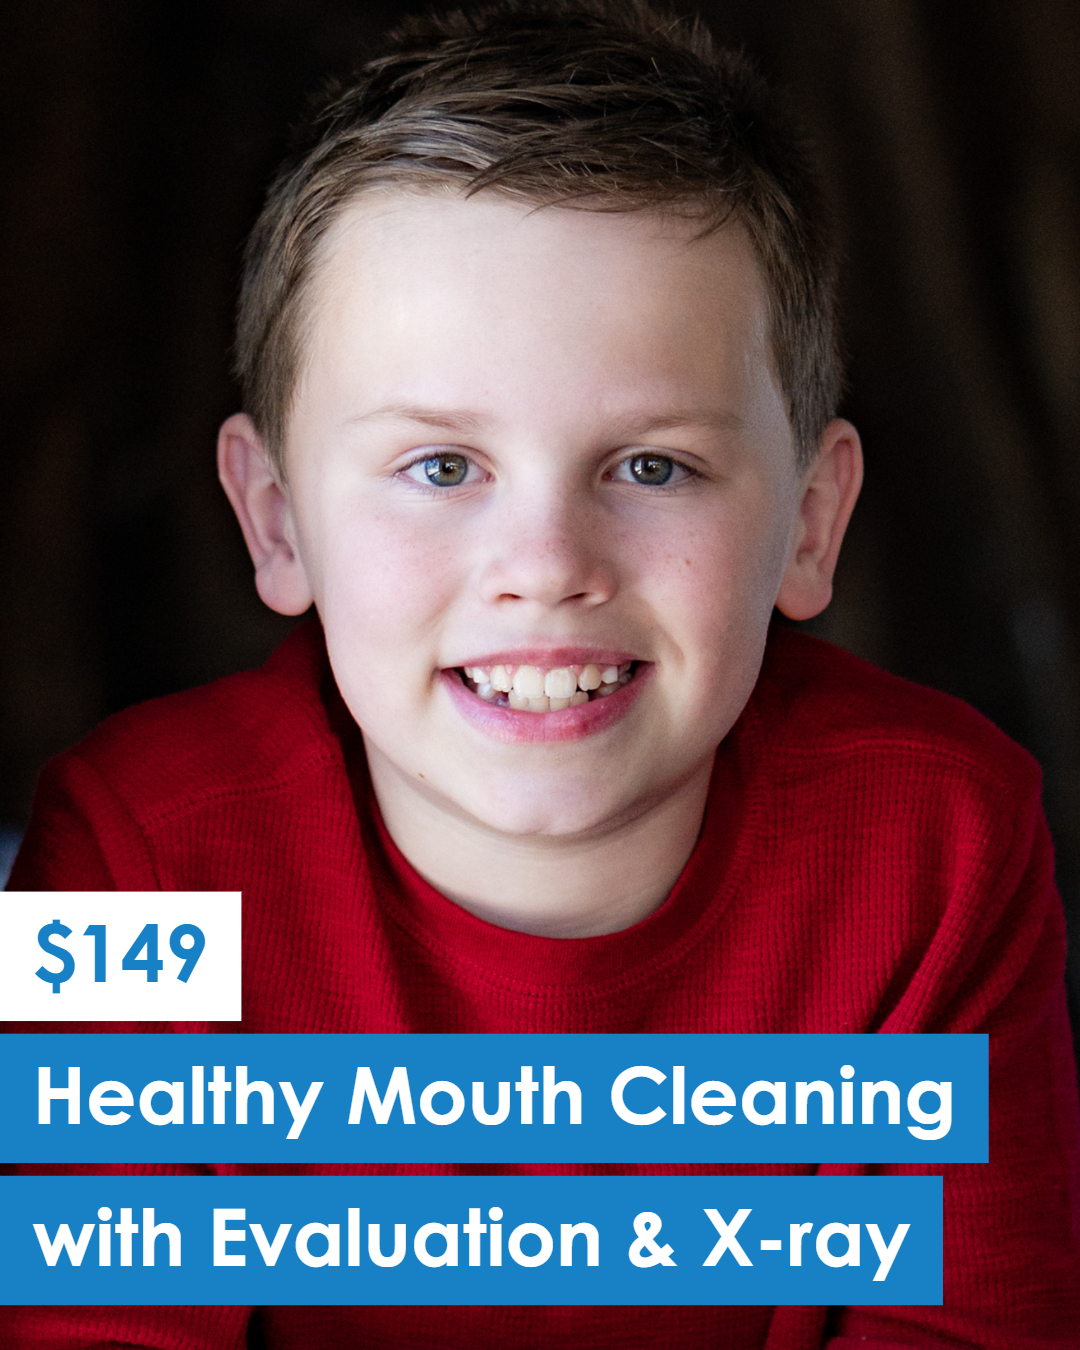 Special Offers - Healthy Mouth Cleaning.jpg